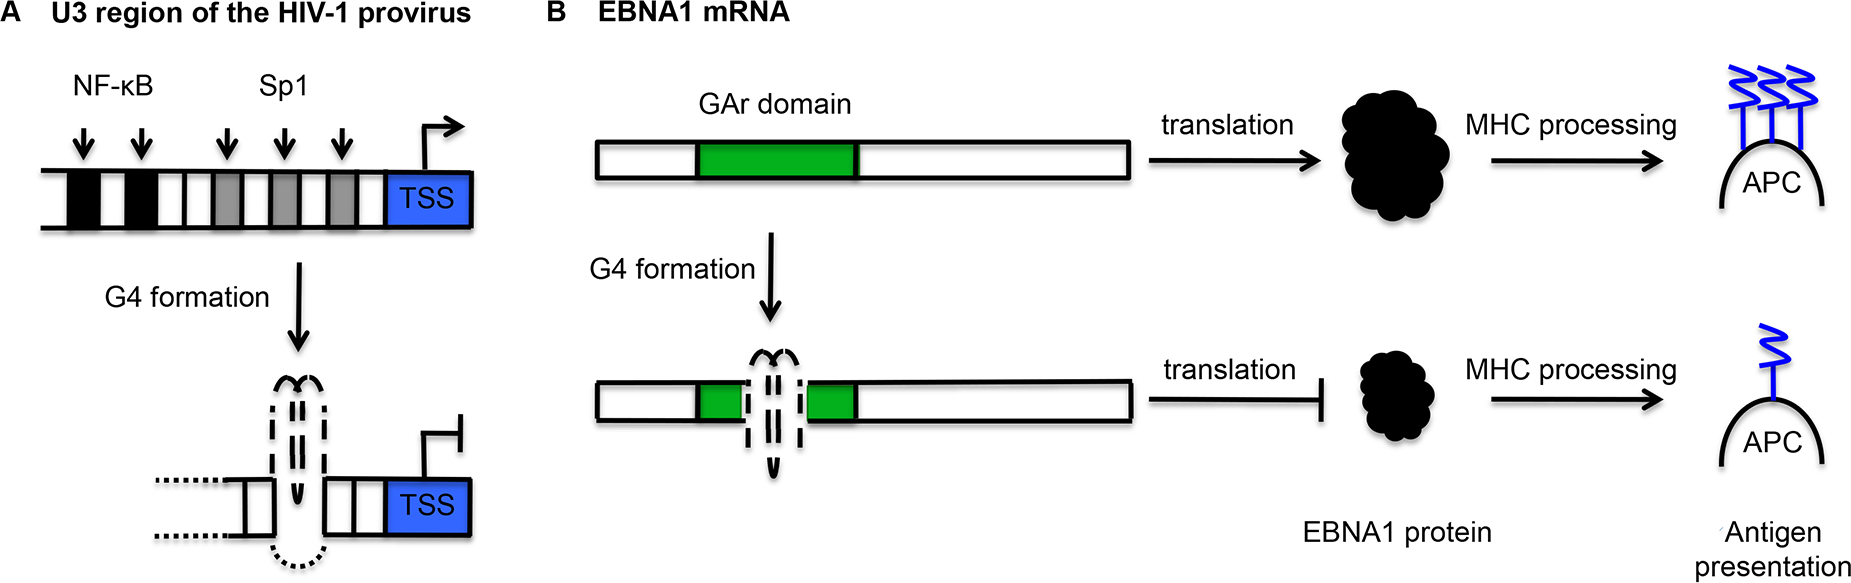 Schematic representation of the mechanisms by which G-quadruplexes (G4) may contribute to the maintenance of viral latency.